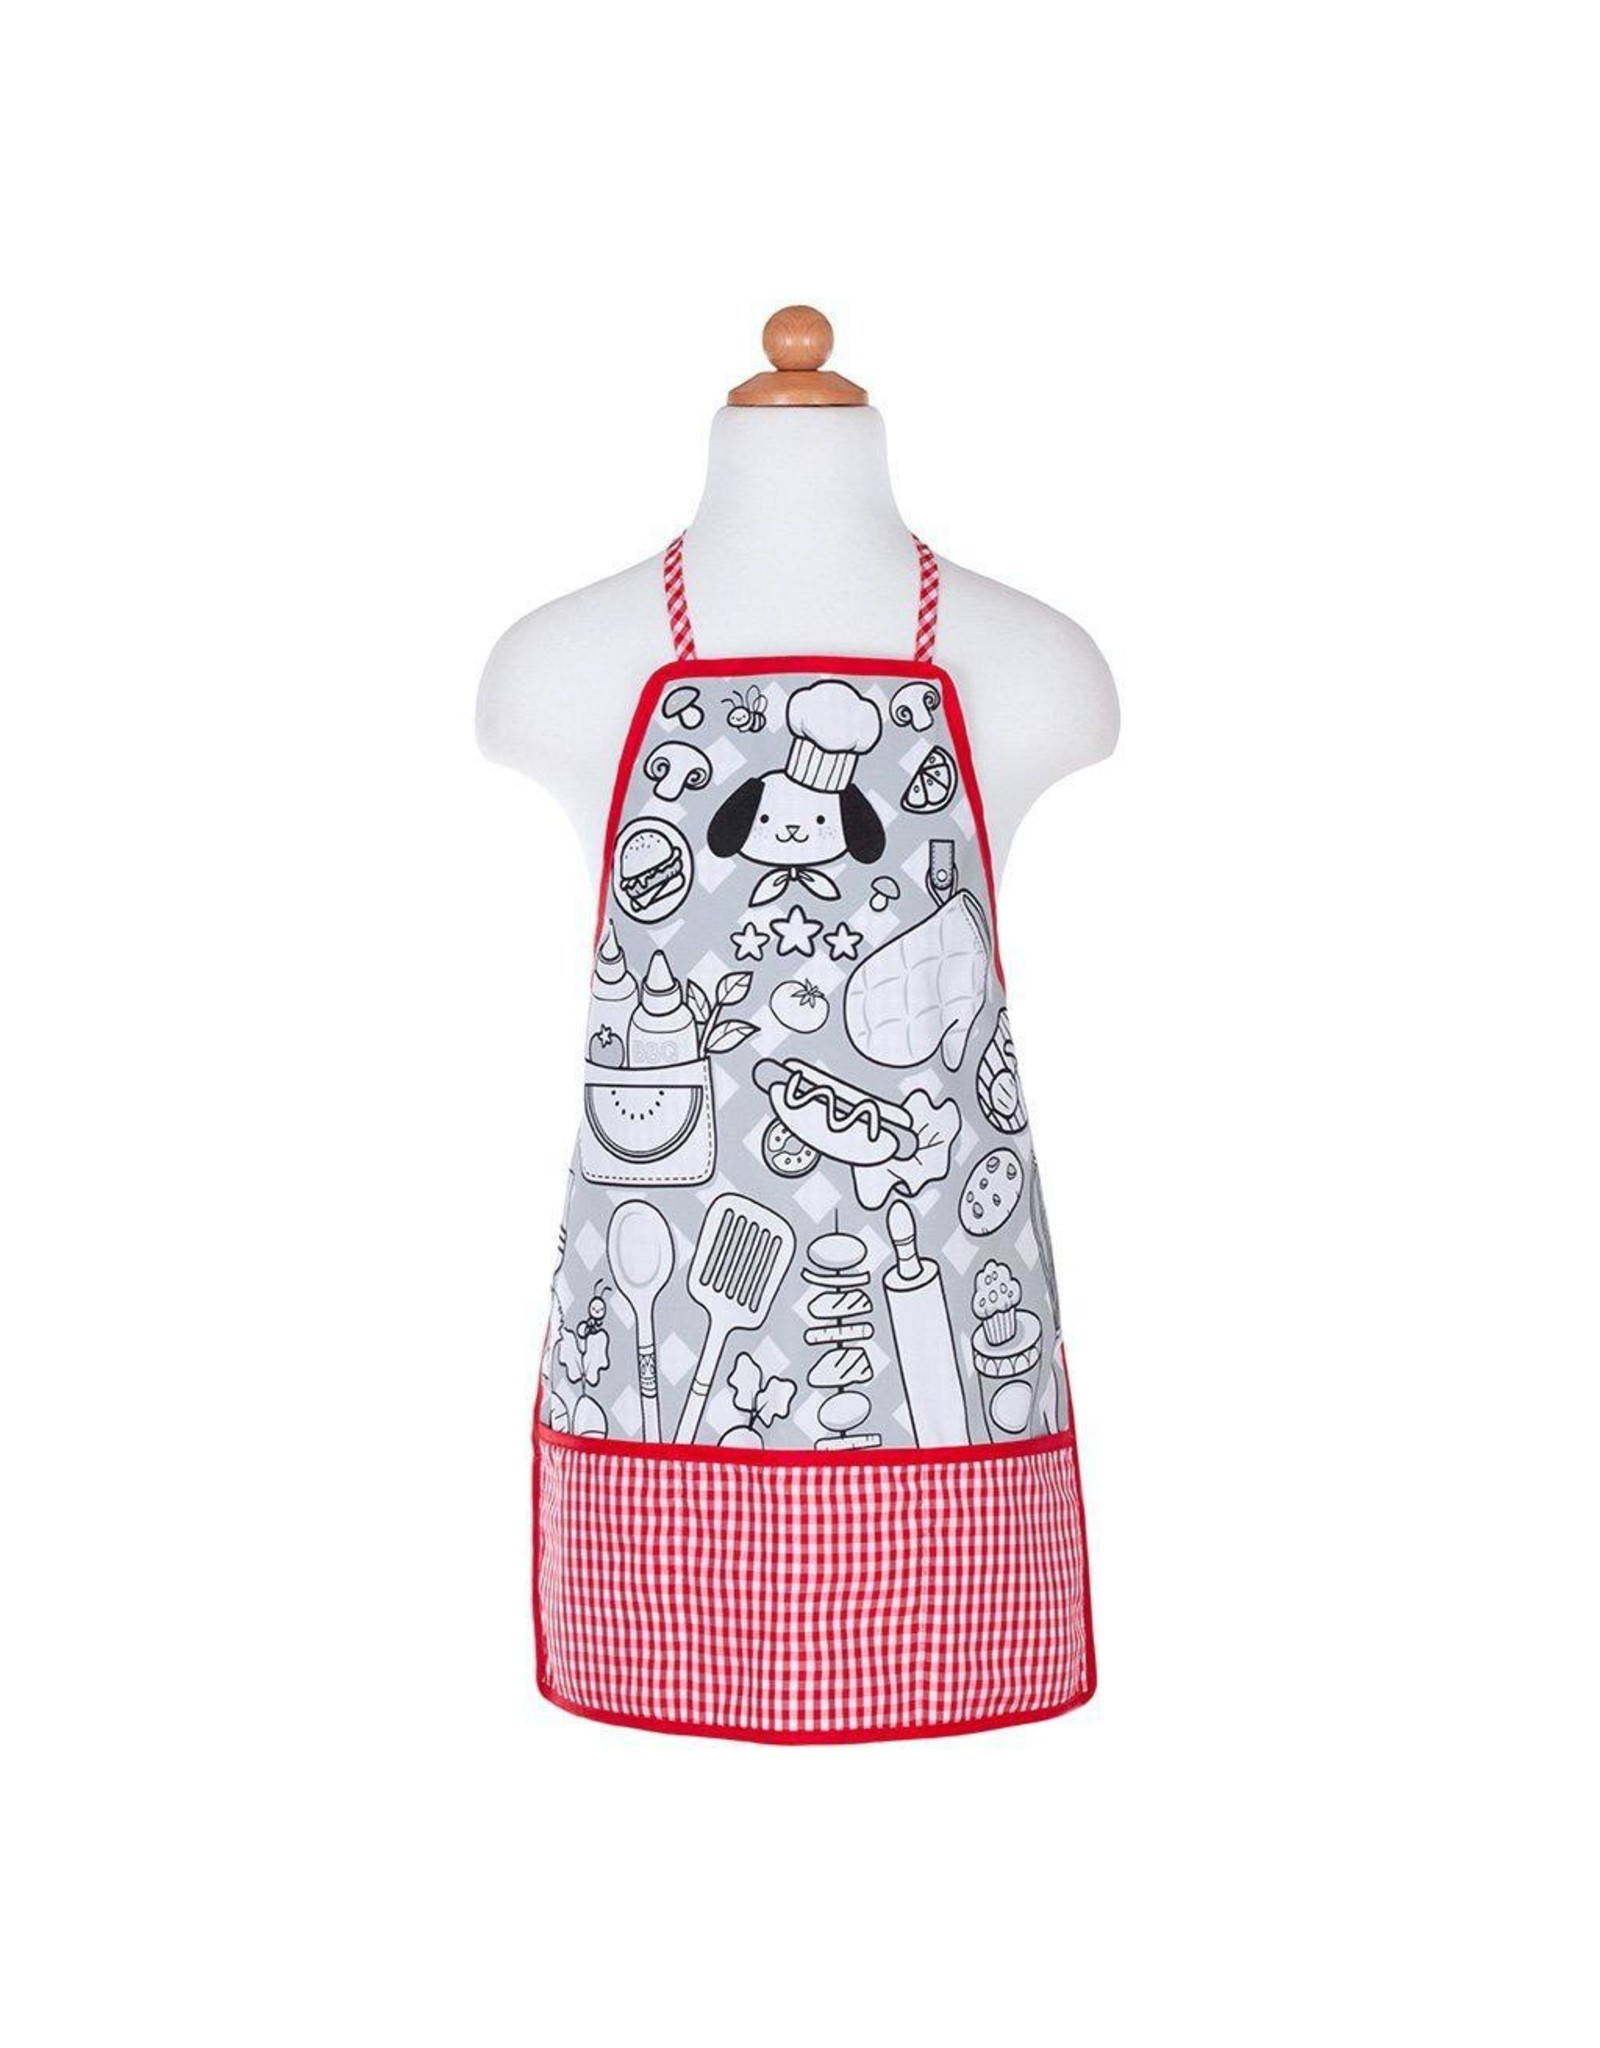 Great Pretenders COLOUR-AN-APRON CHEF, SIZE 4-6